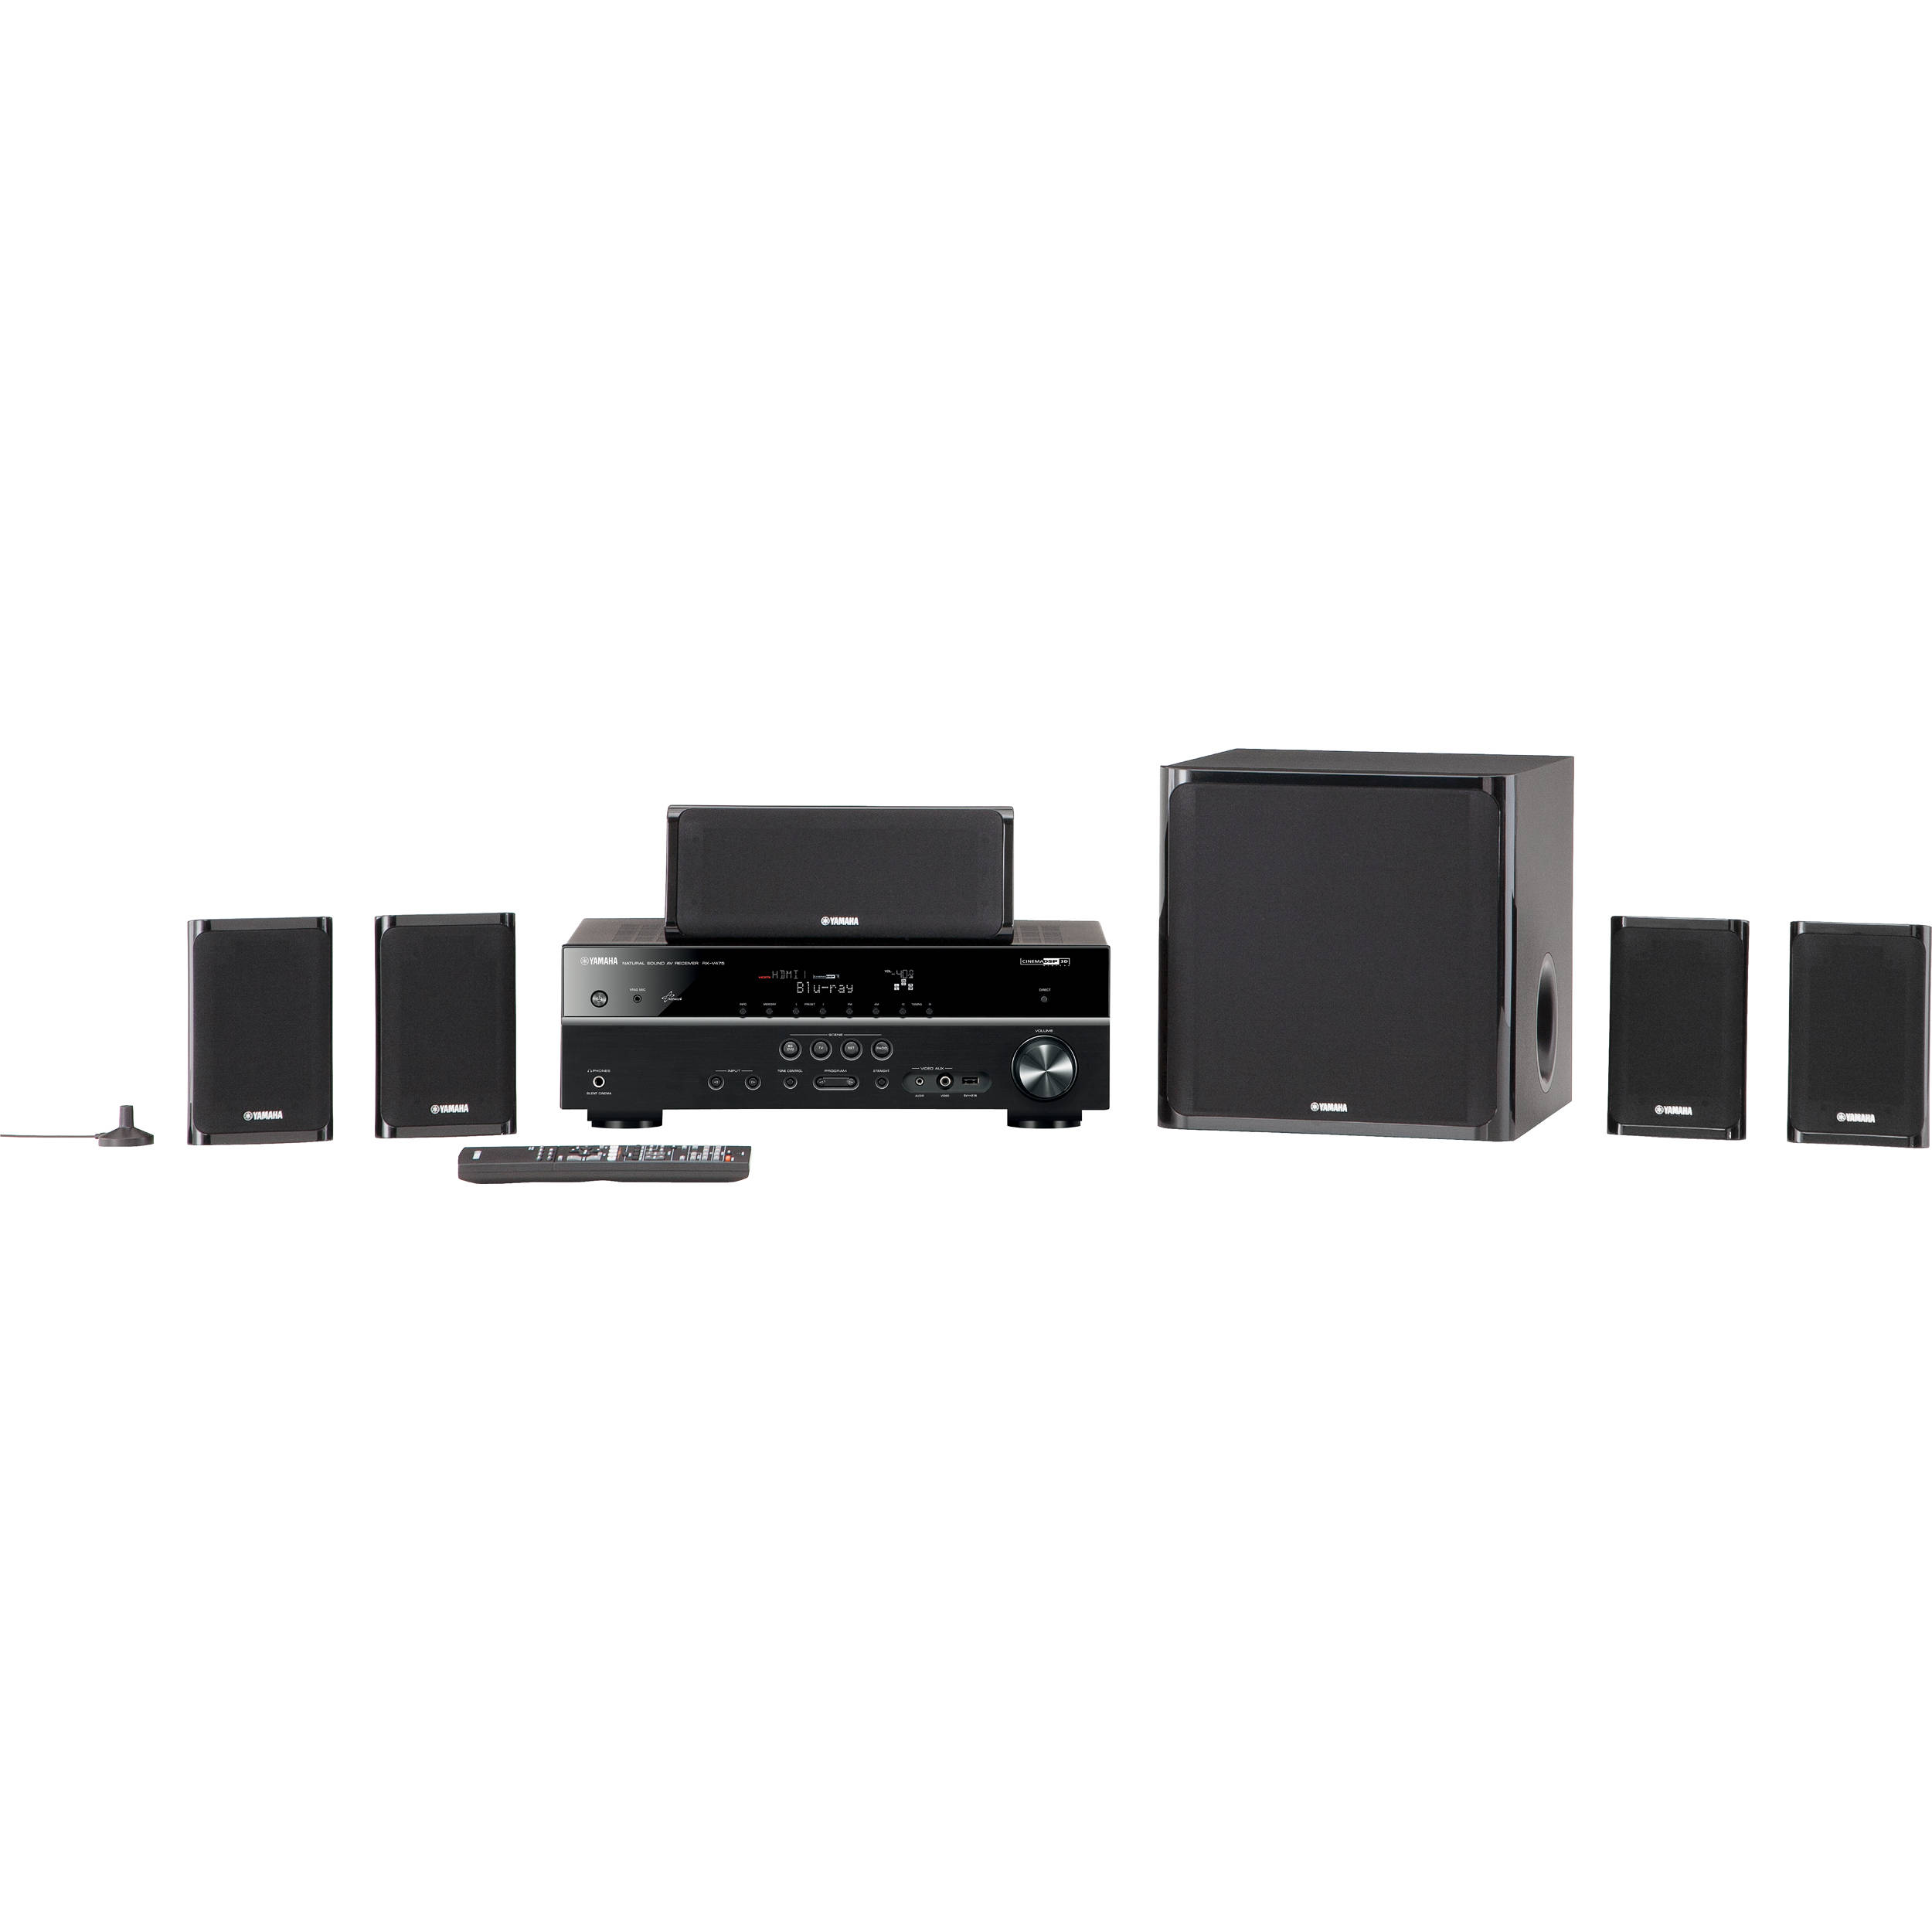 Yamaha YHT-599UBL 5.1-Channel Network AV Home Theater YHT-599UBL